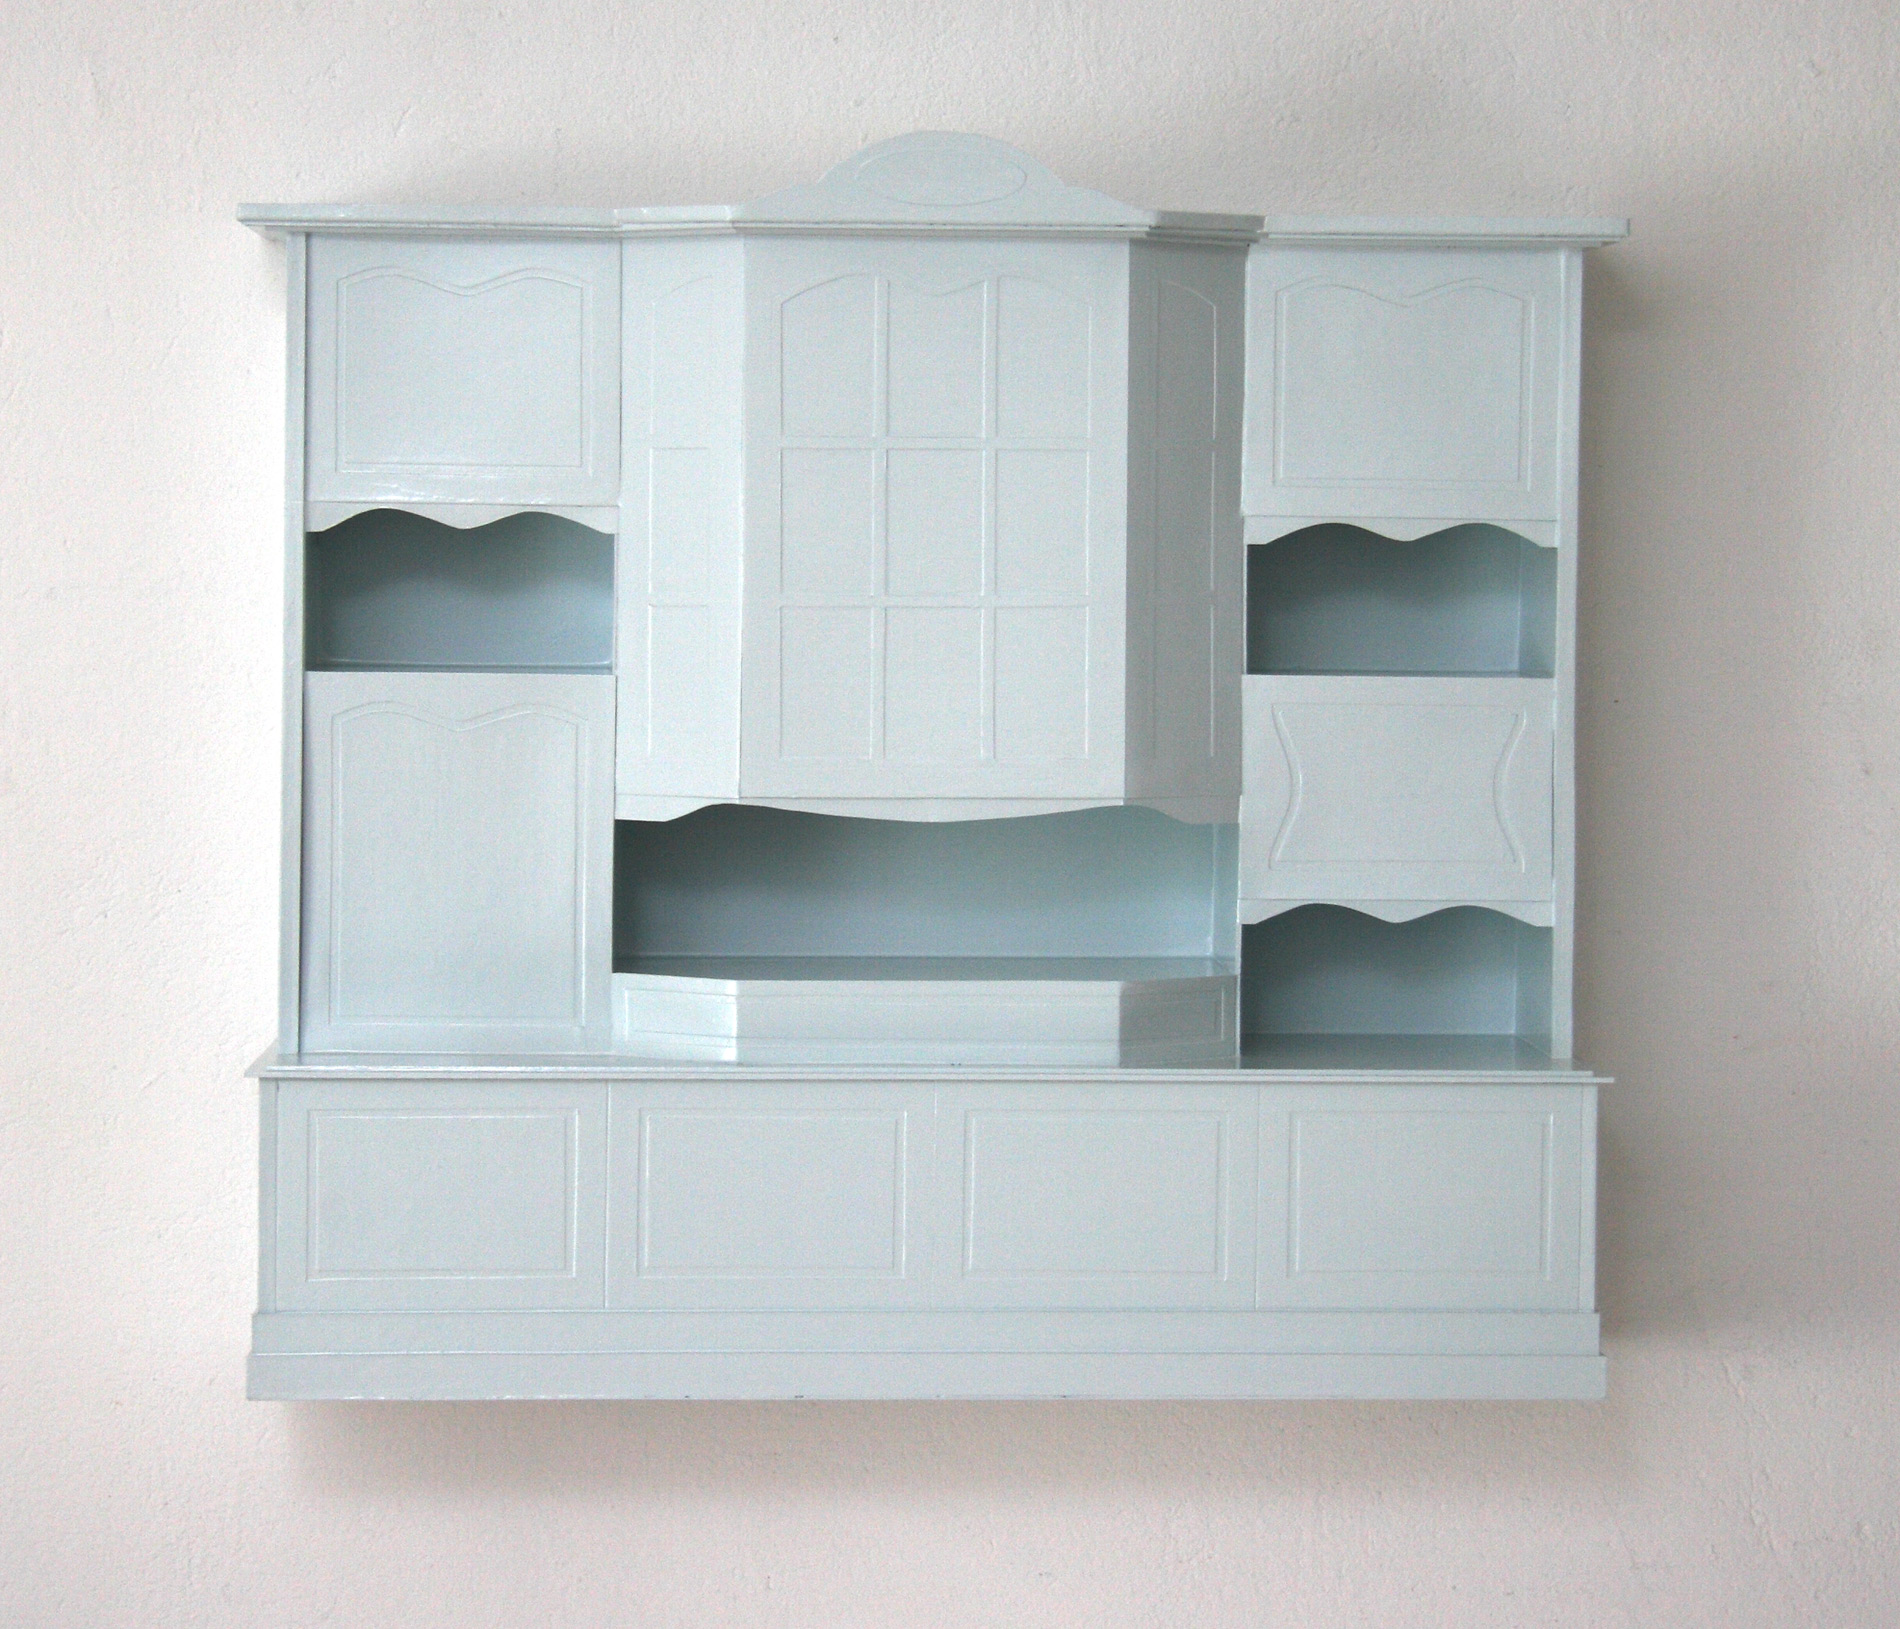 Michael Göbel - o. T. (Storages I), 2008